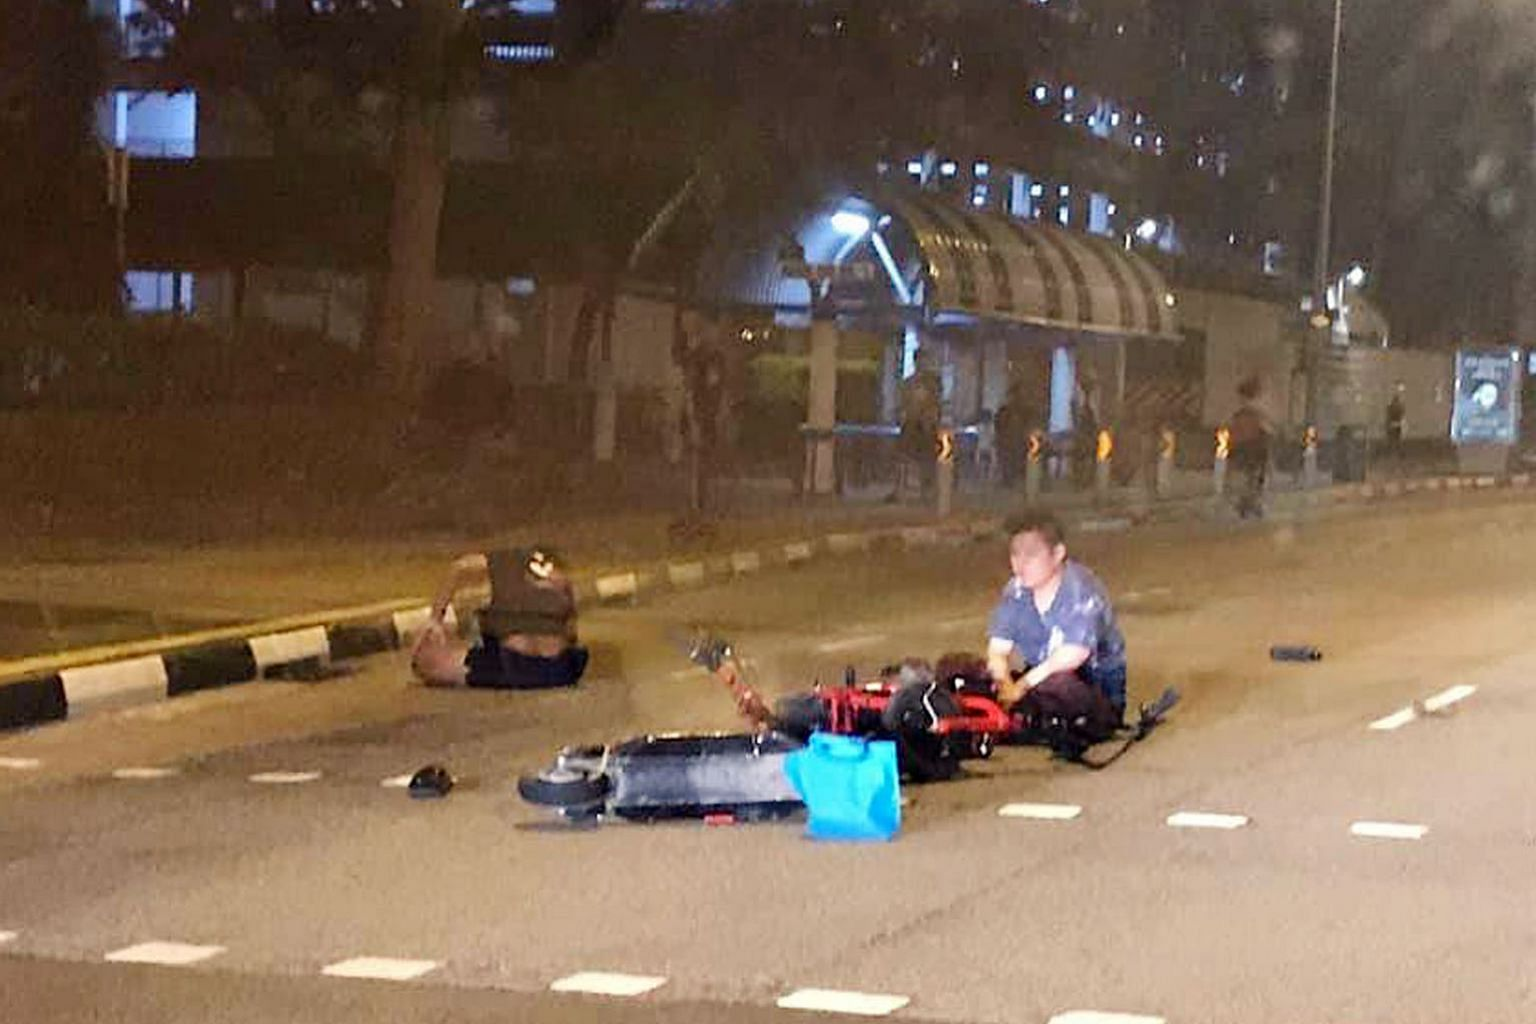 A personal mobility device (PMD) rider was injured after colliding with an electric scooter on Saturday evening. Footage of the incident shows the rider (in blue) of the PMD, which looks like an e-bicycle, crossing a road while the traffic light was